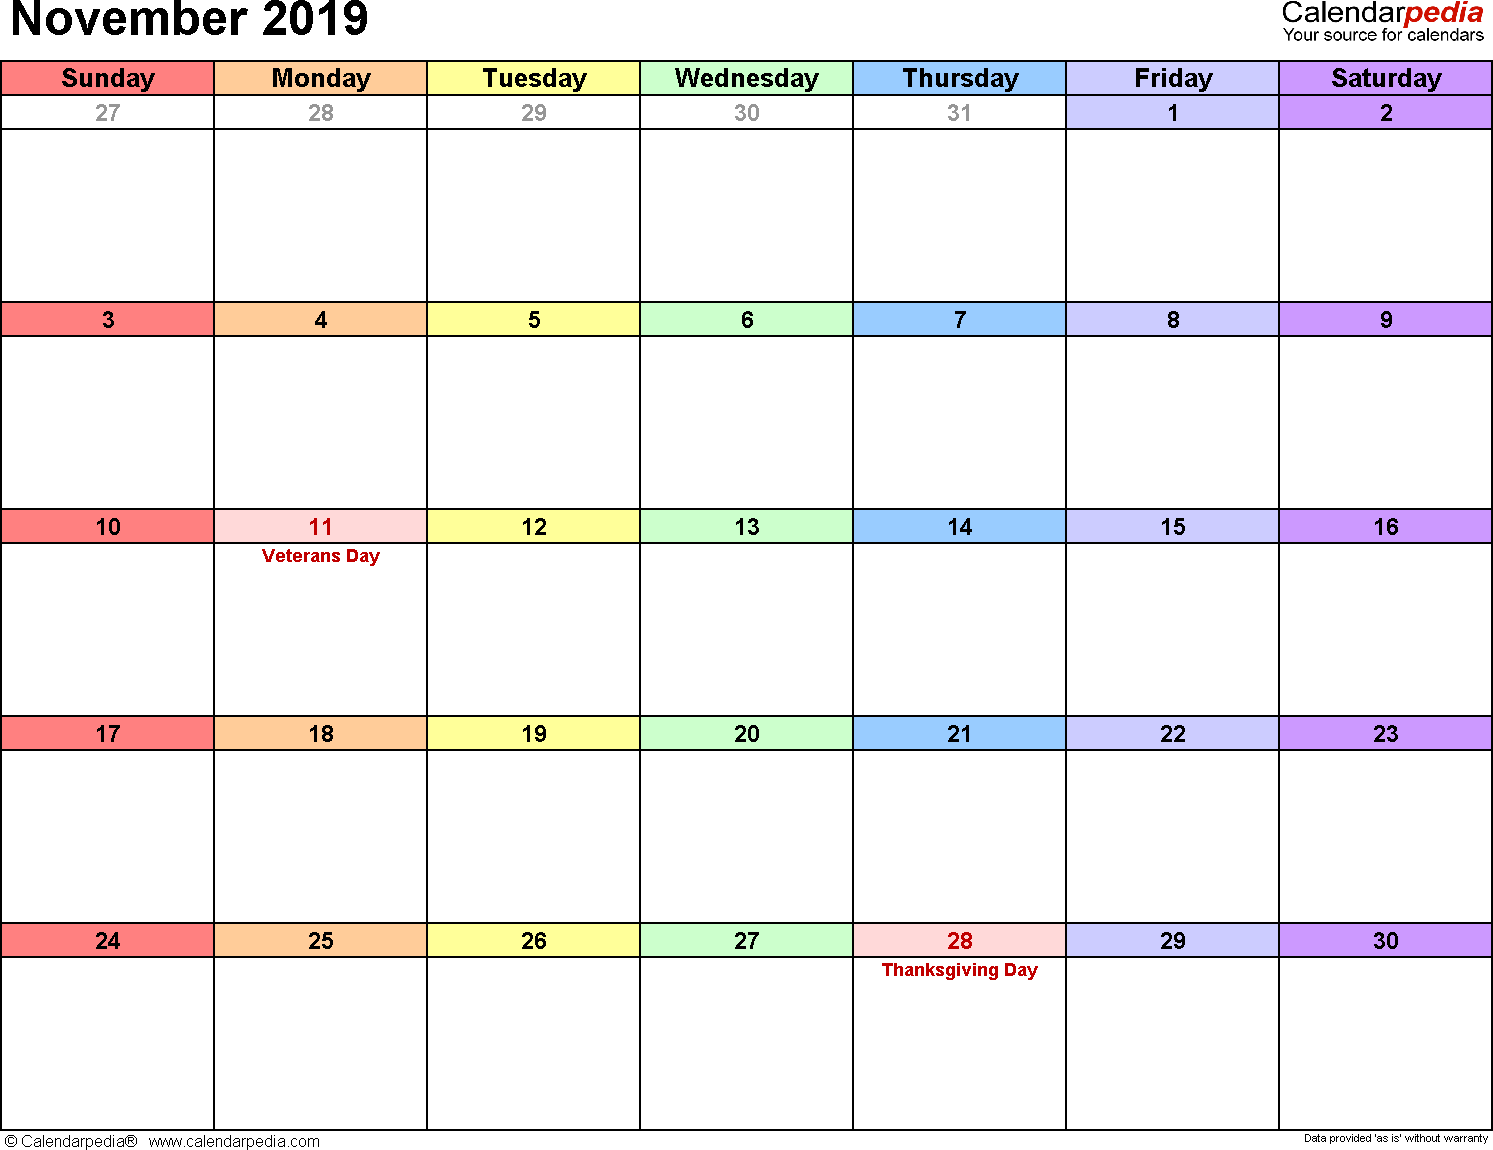 photo regarding November Calendar Printable Pdf named November 2019 Calendars for Term, Excel PDF